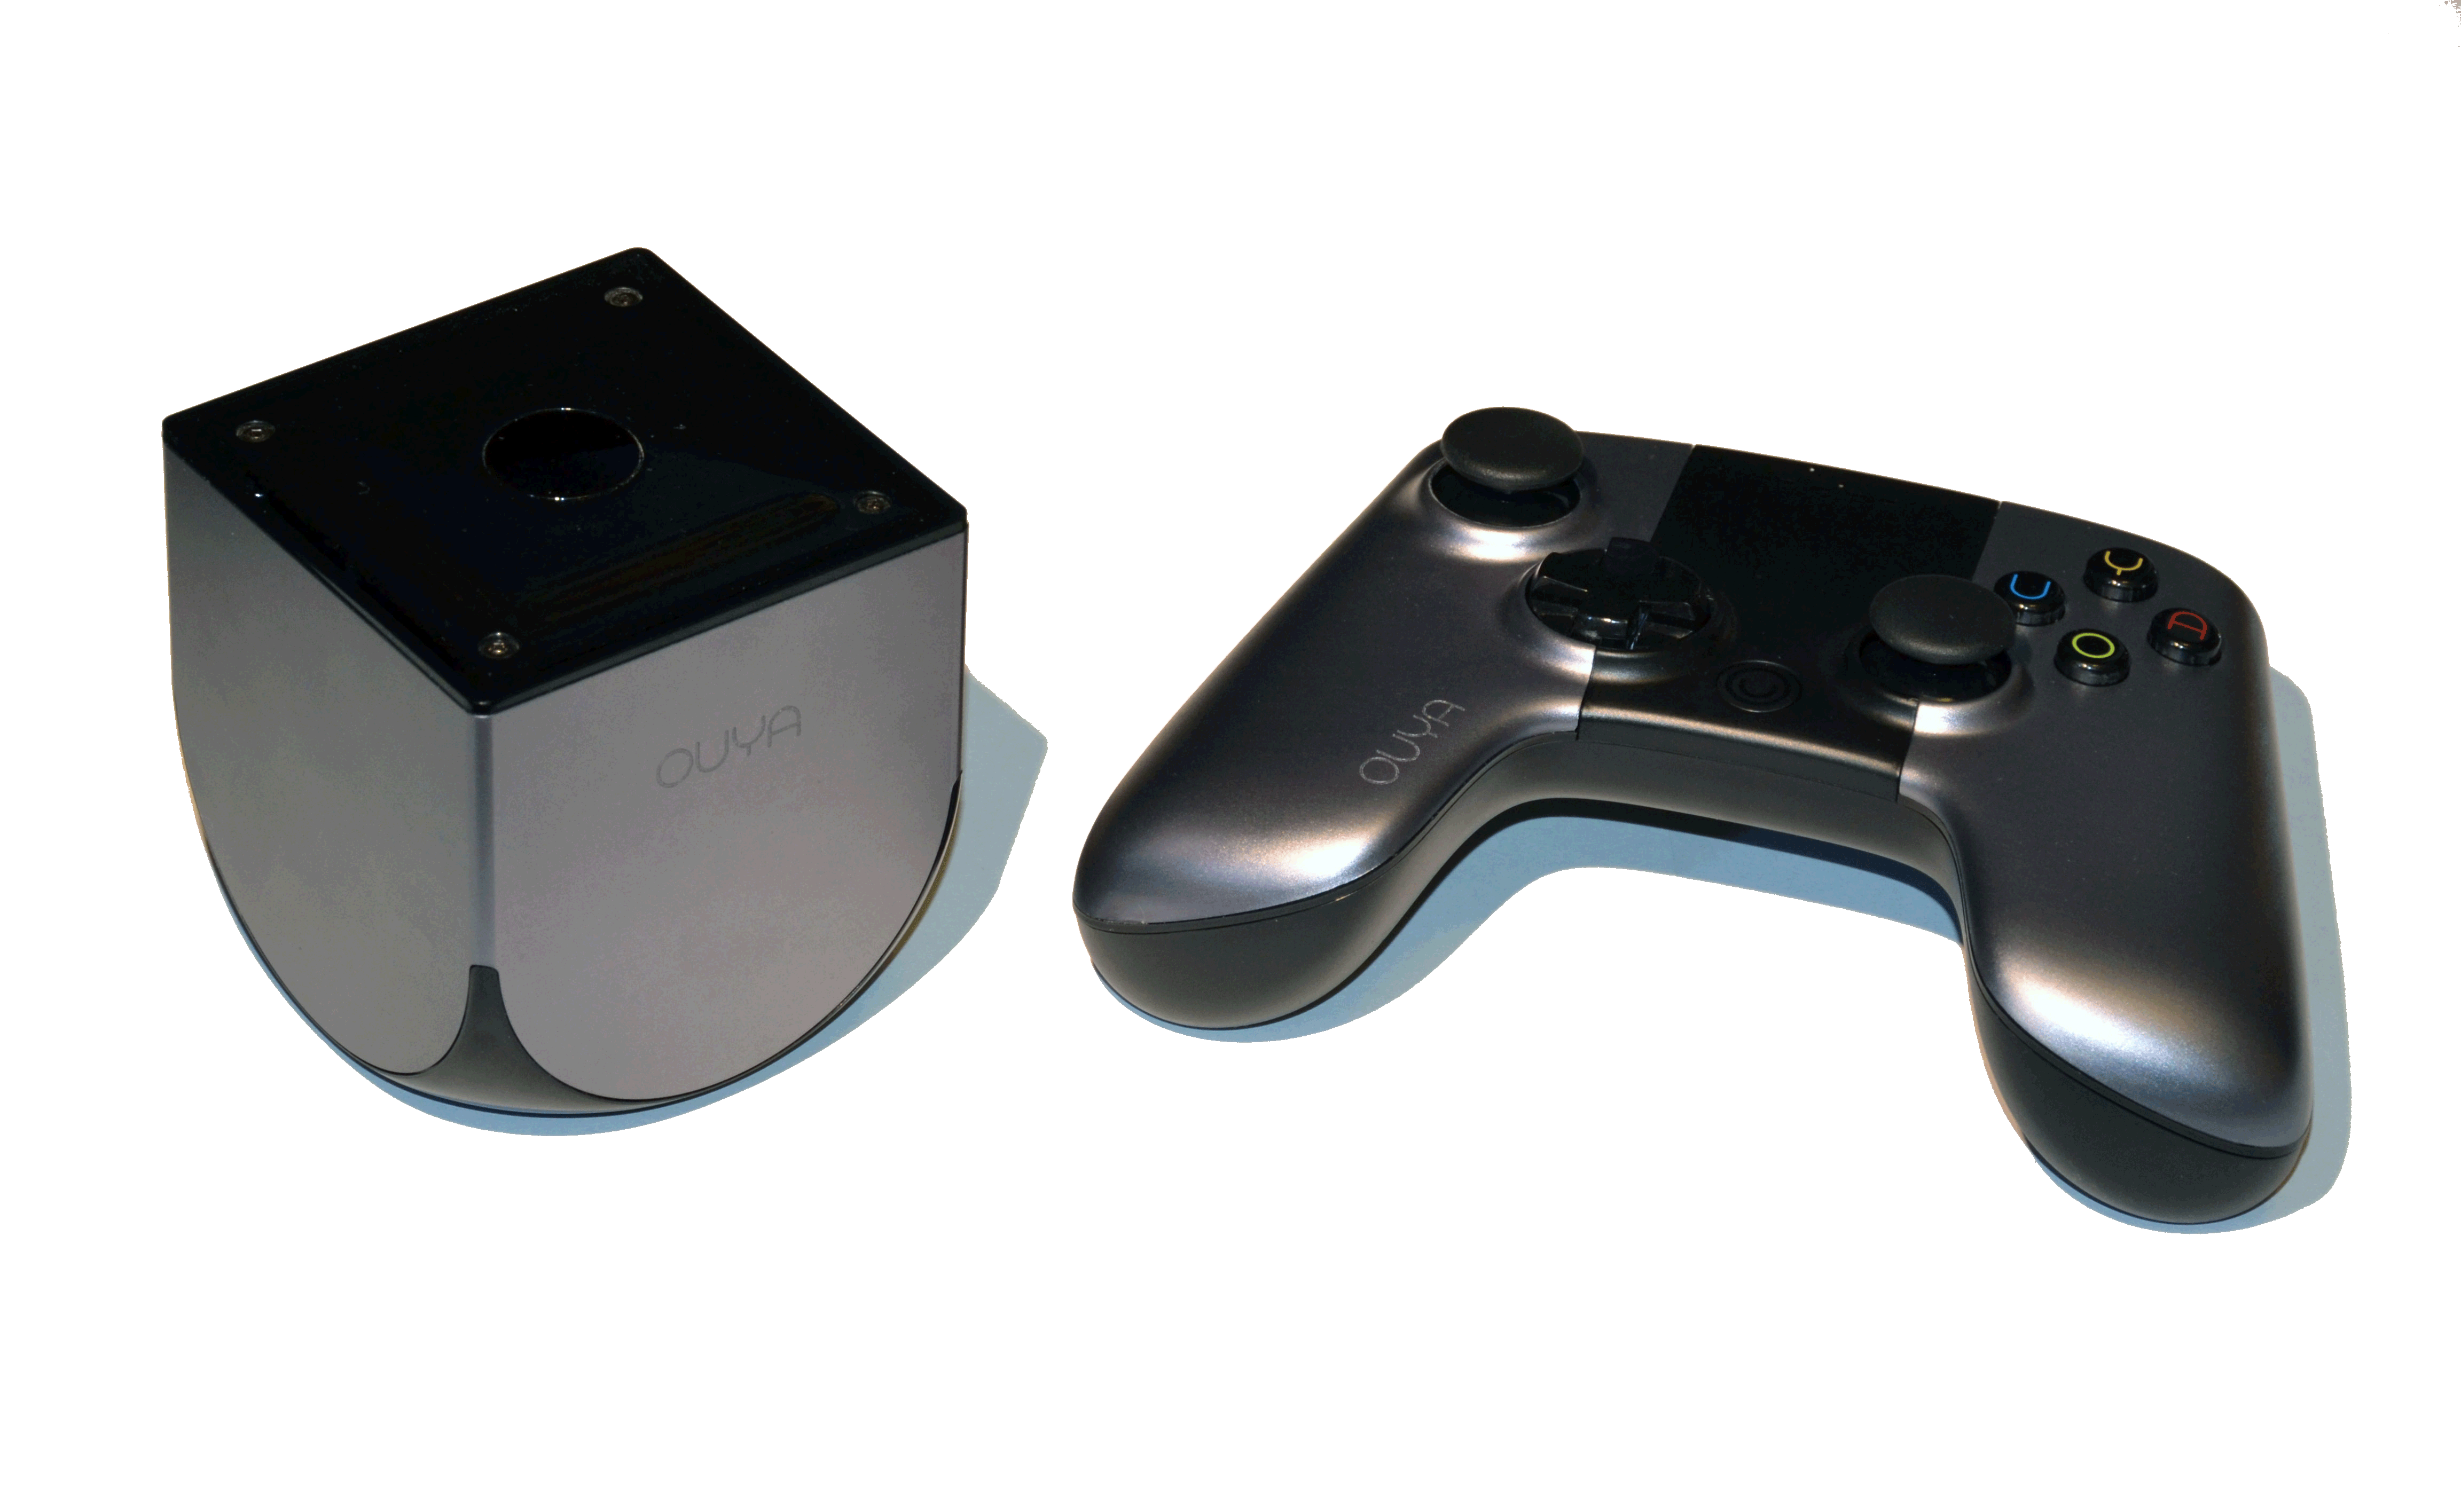 File:Ouya video game microconsole (9172860385) with transparency.png